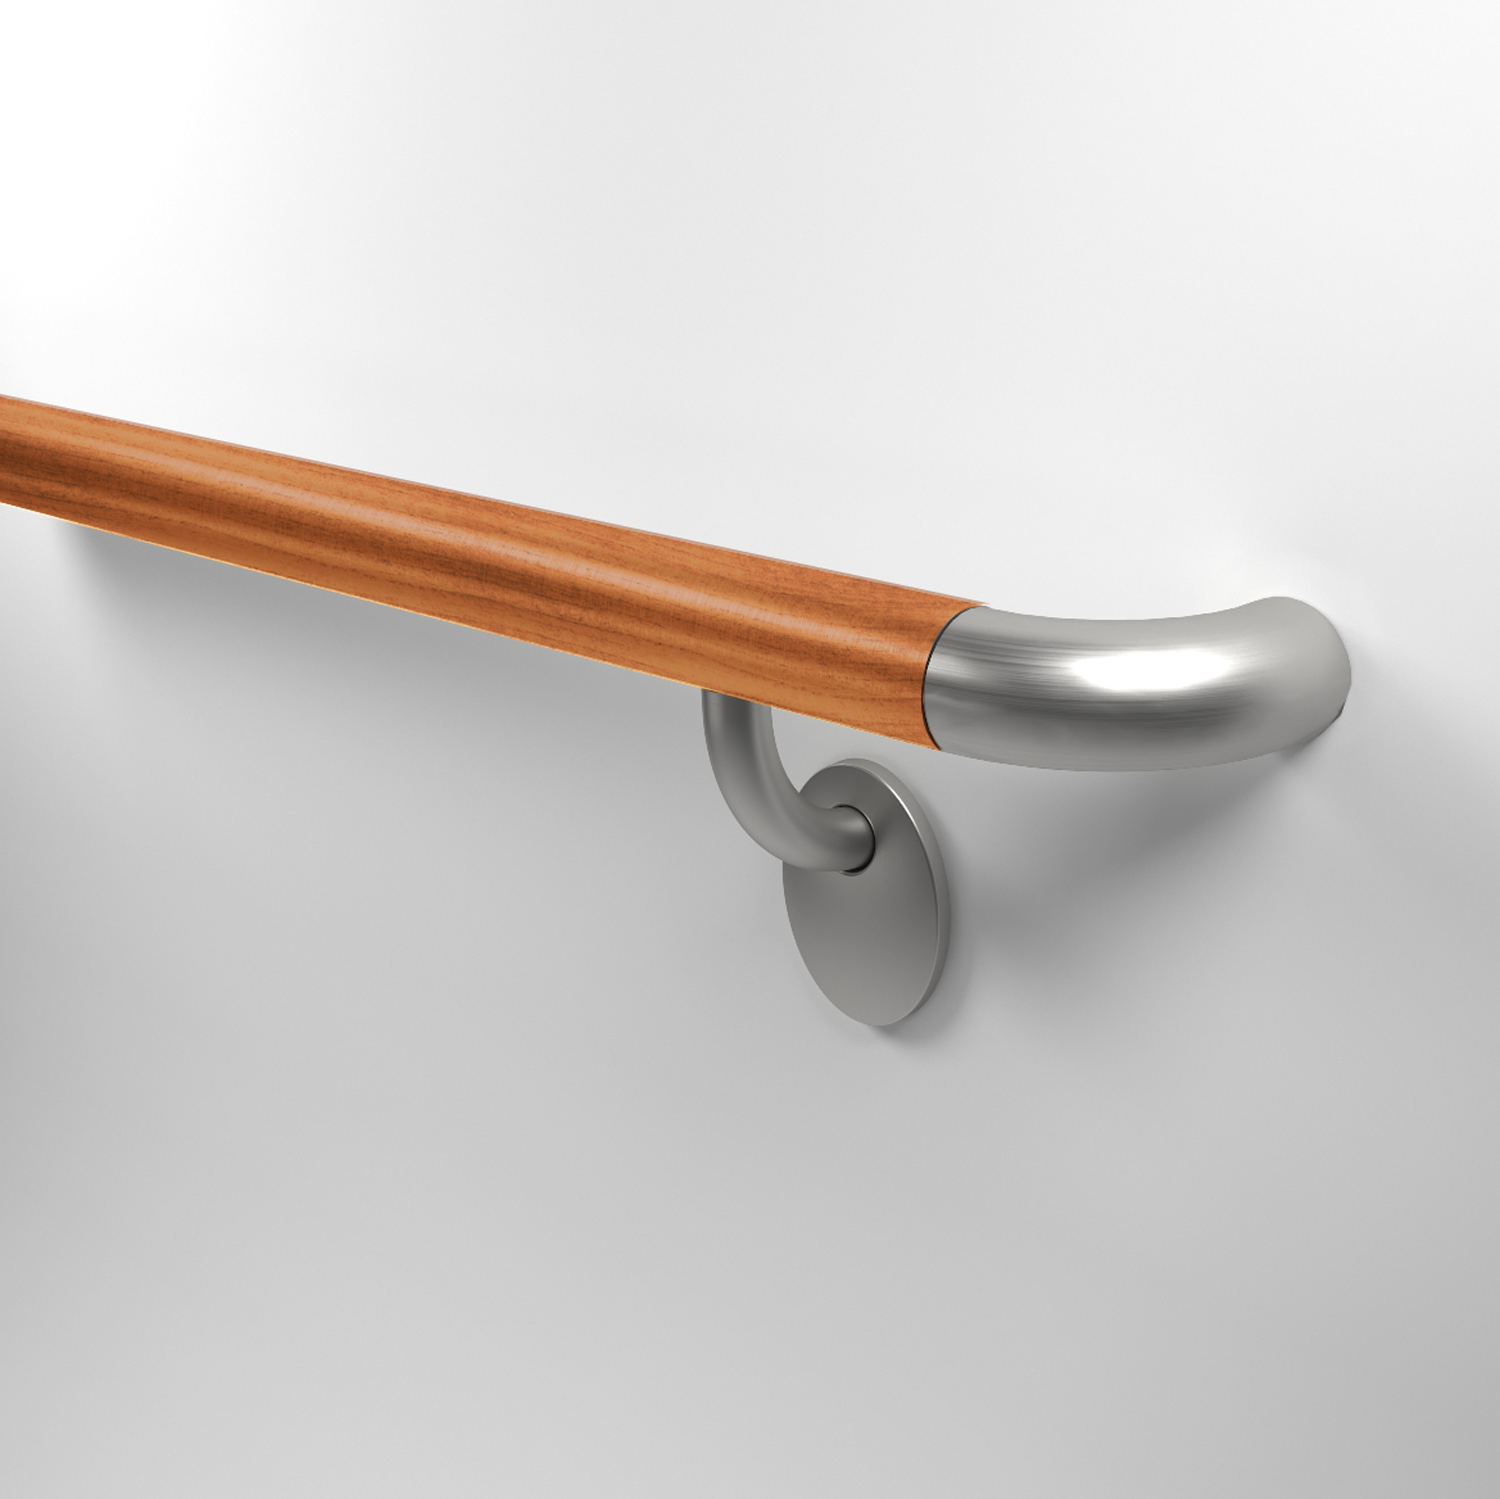 HR910 hardwood and stainless steel handrail